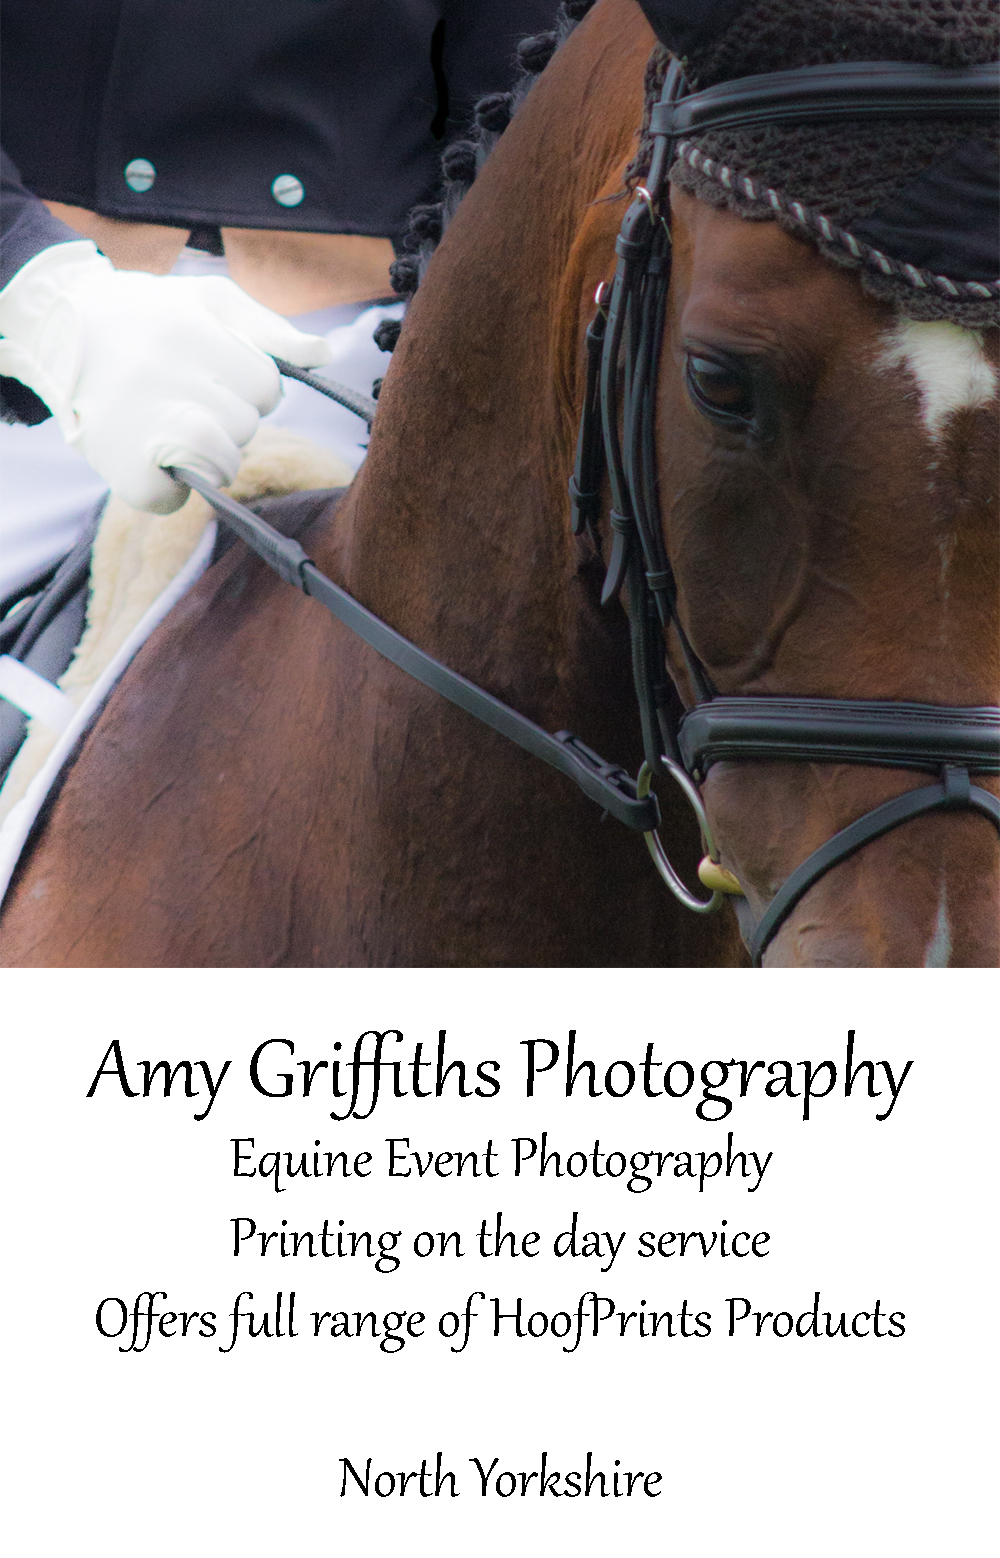 Amy Griffiths Event Photographer